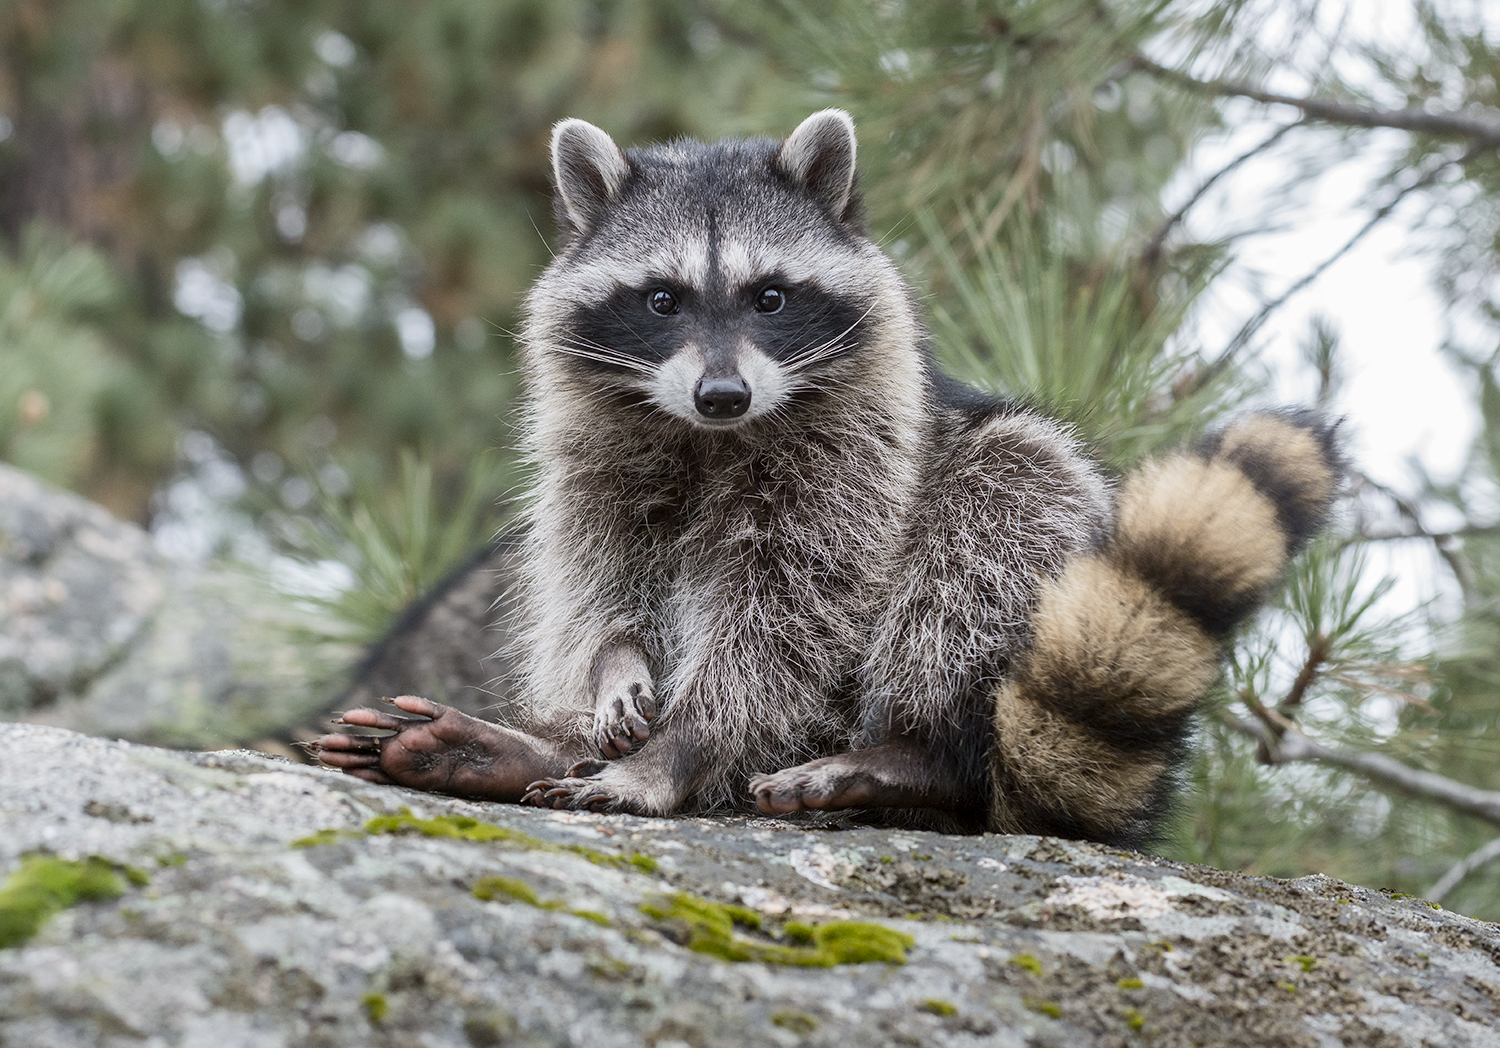 A young raccoon sits and prepares to clean himself. Don't mind me:)